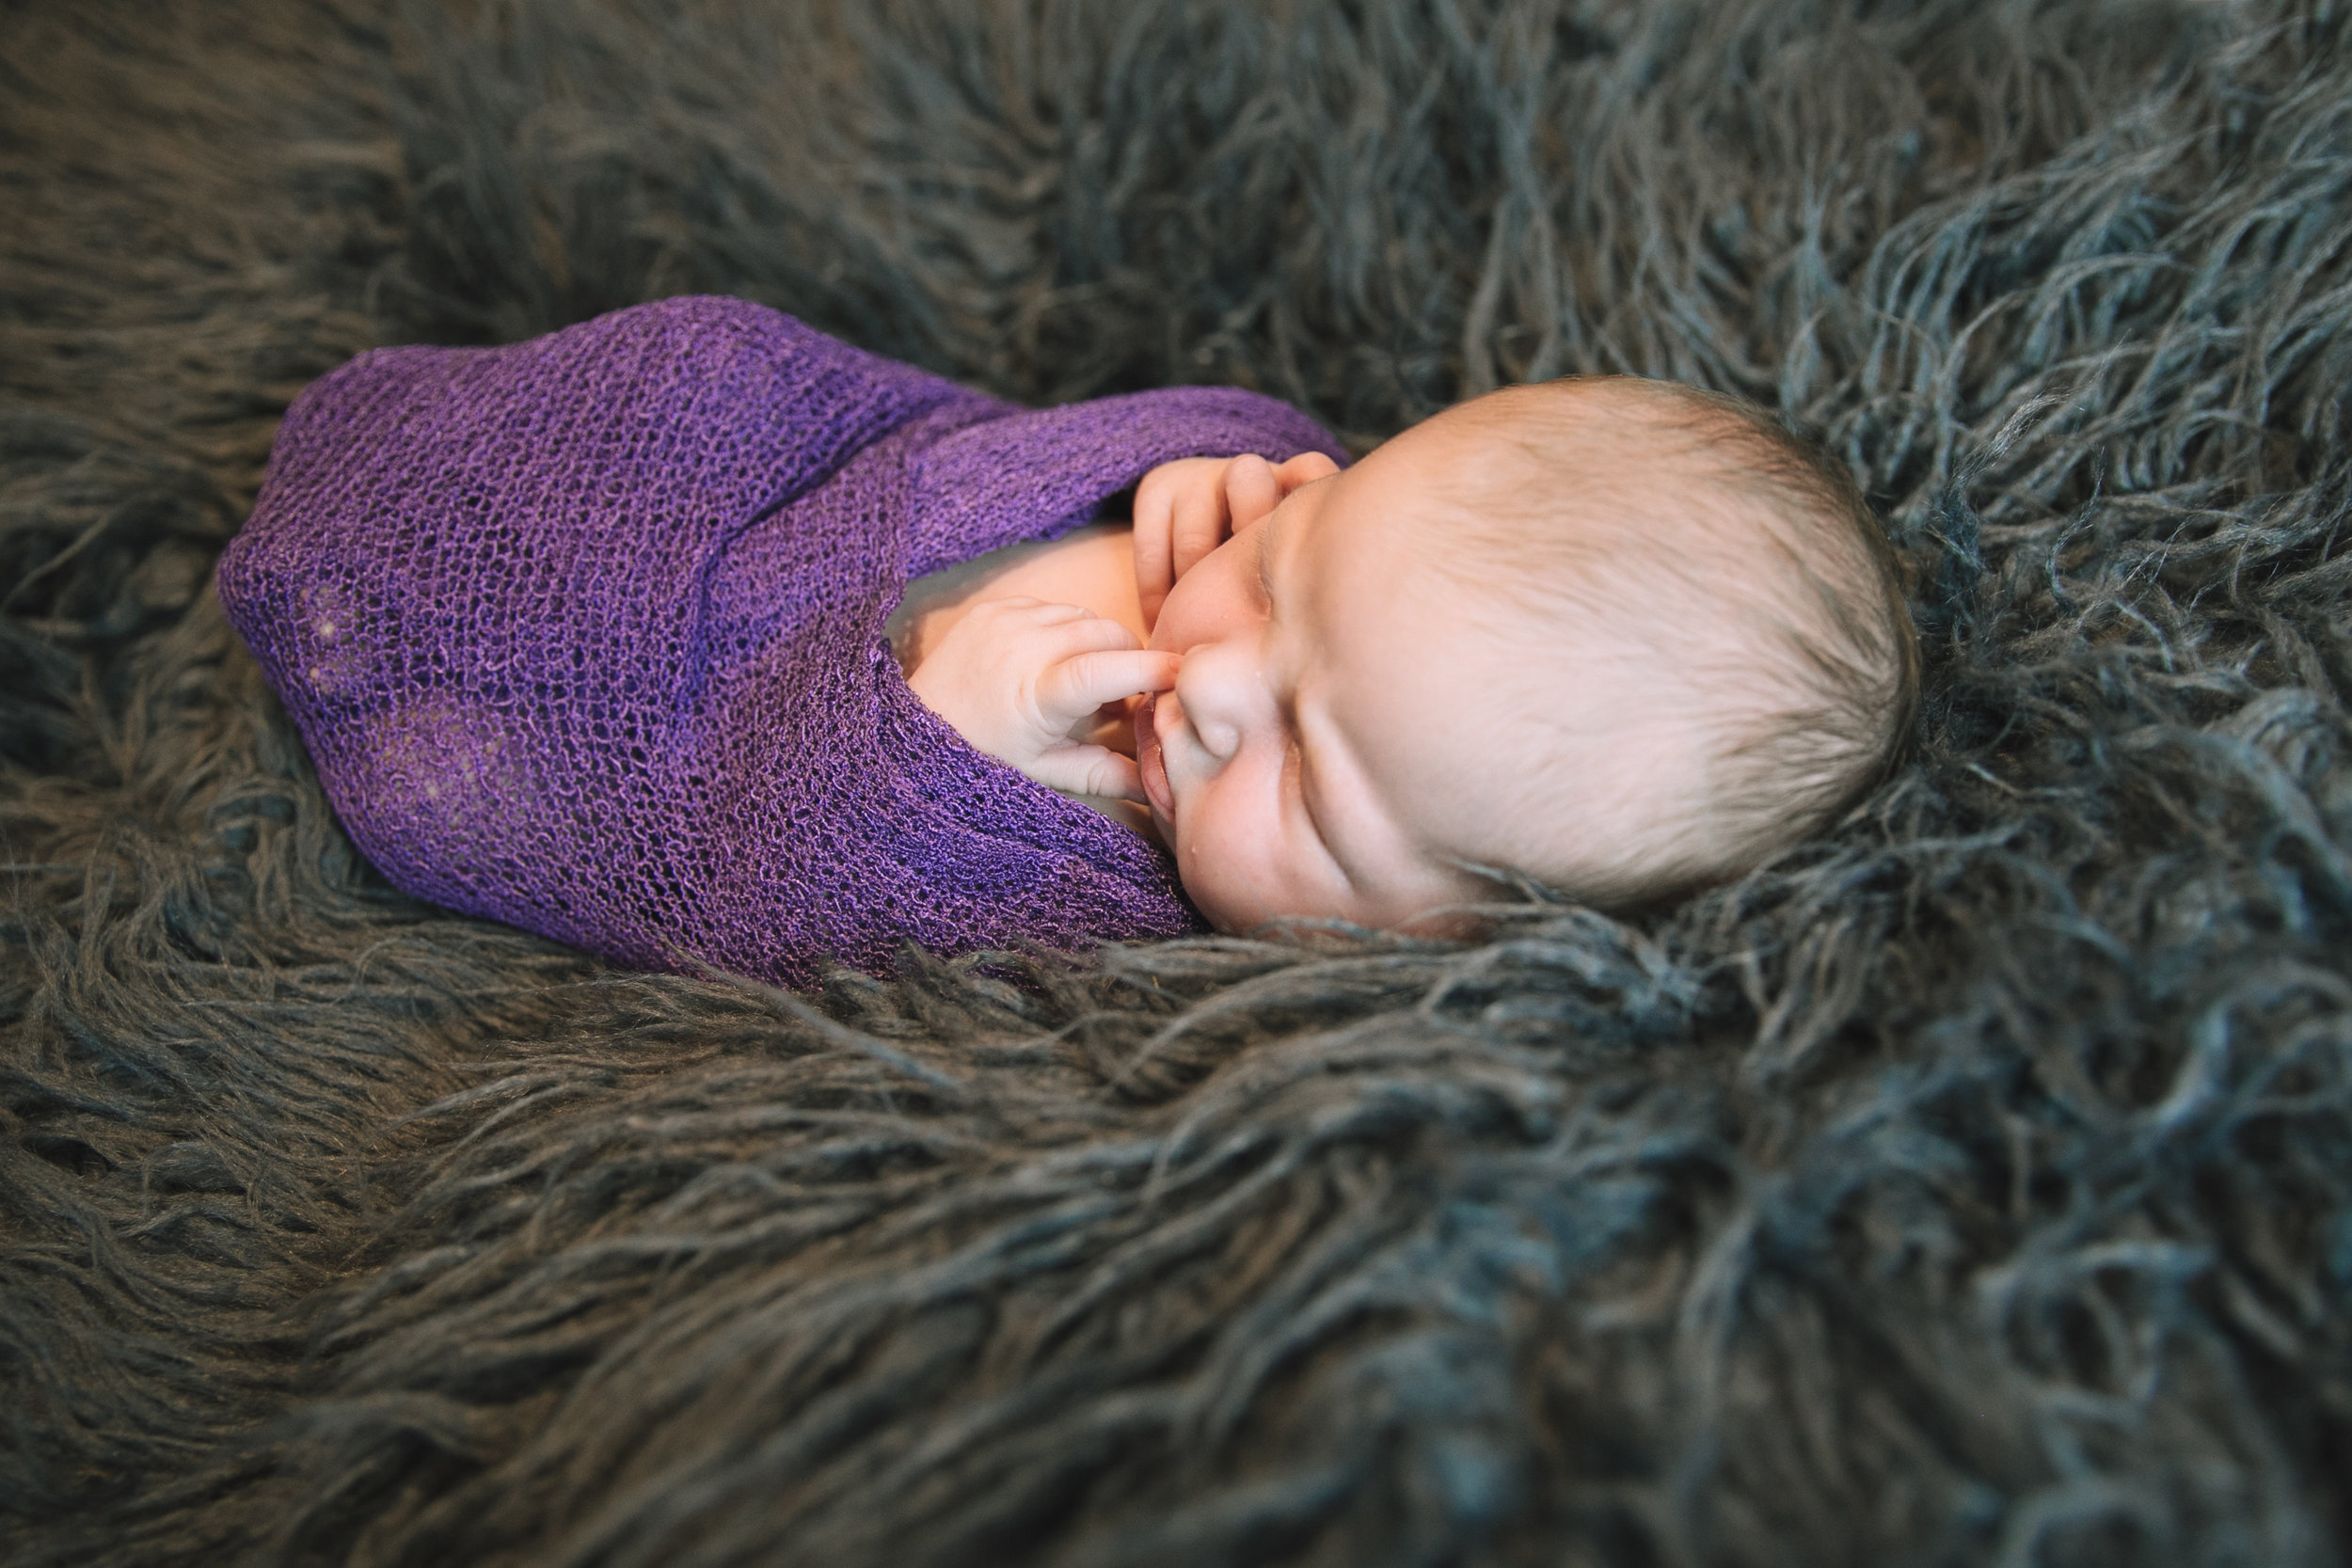 CrystalJessupPhotographyNewborn (2 of 29).jpg